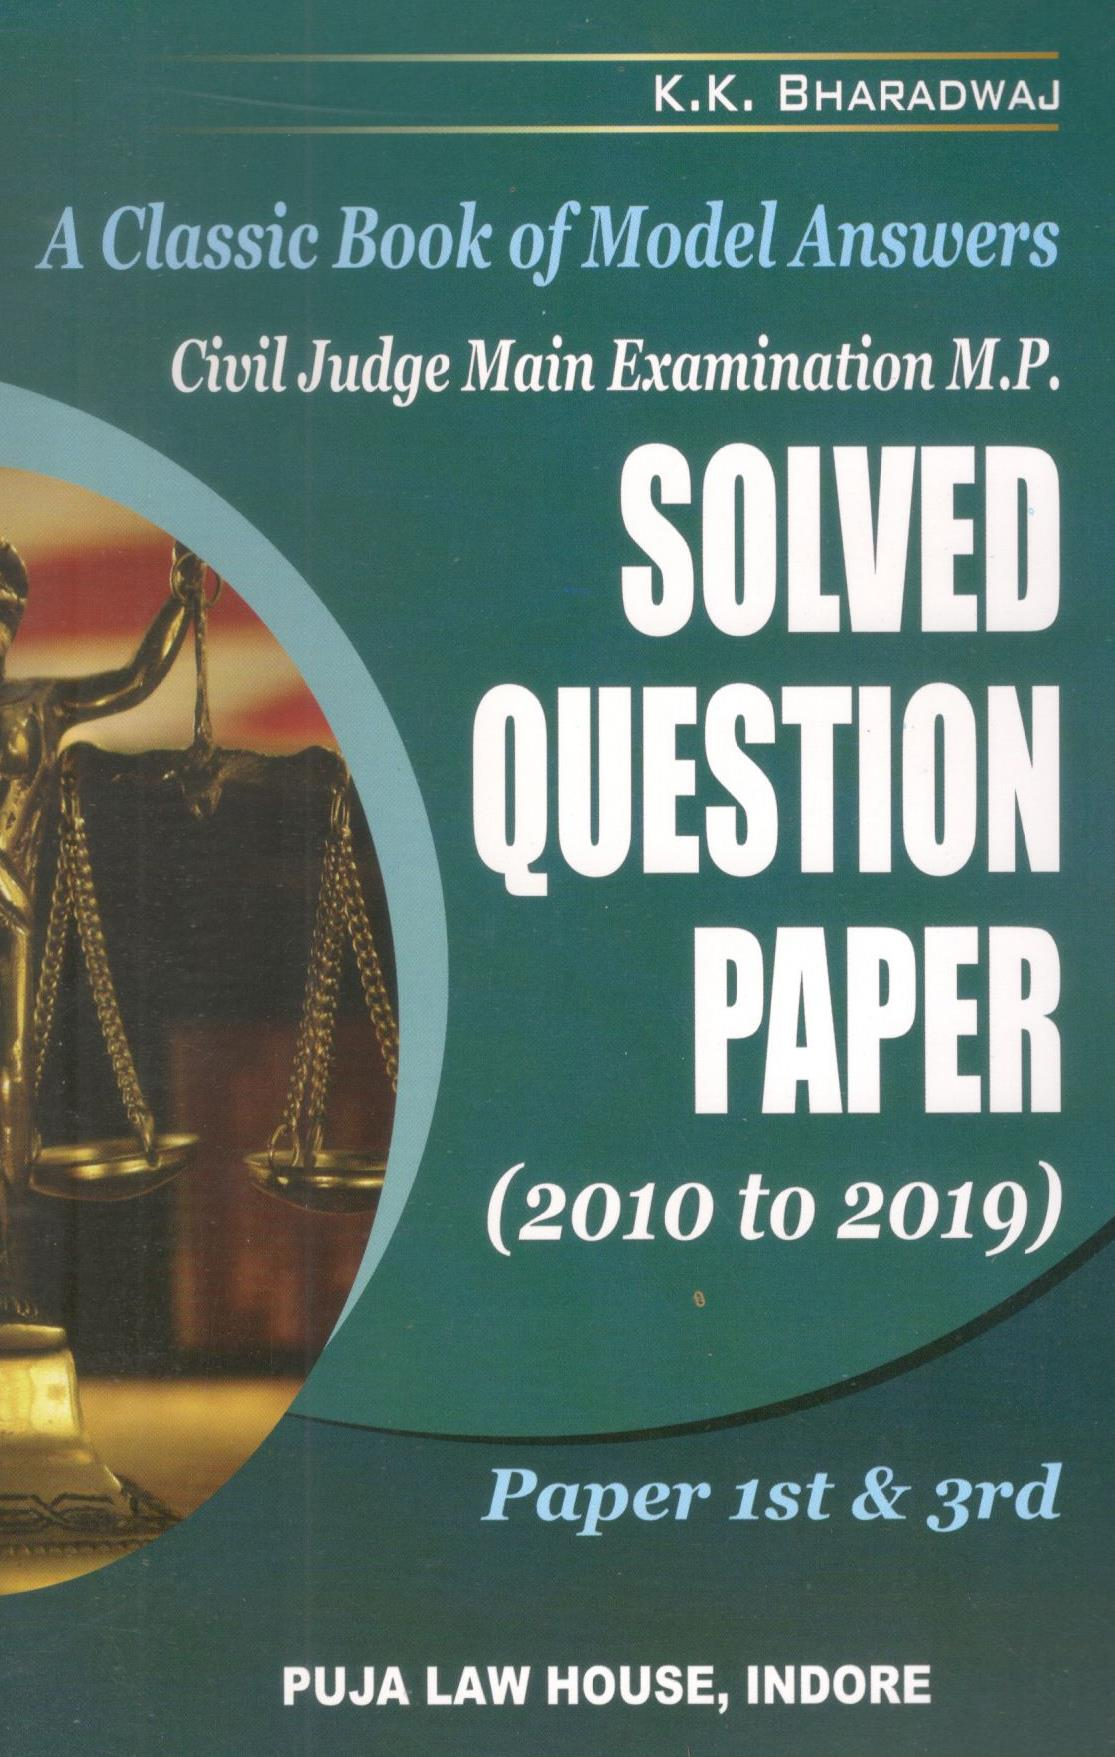 Civil Judge main Examination M.P. SOLVED QUESTION PAPER (2010 to 2019) Paper - 1st and 3rd